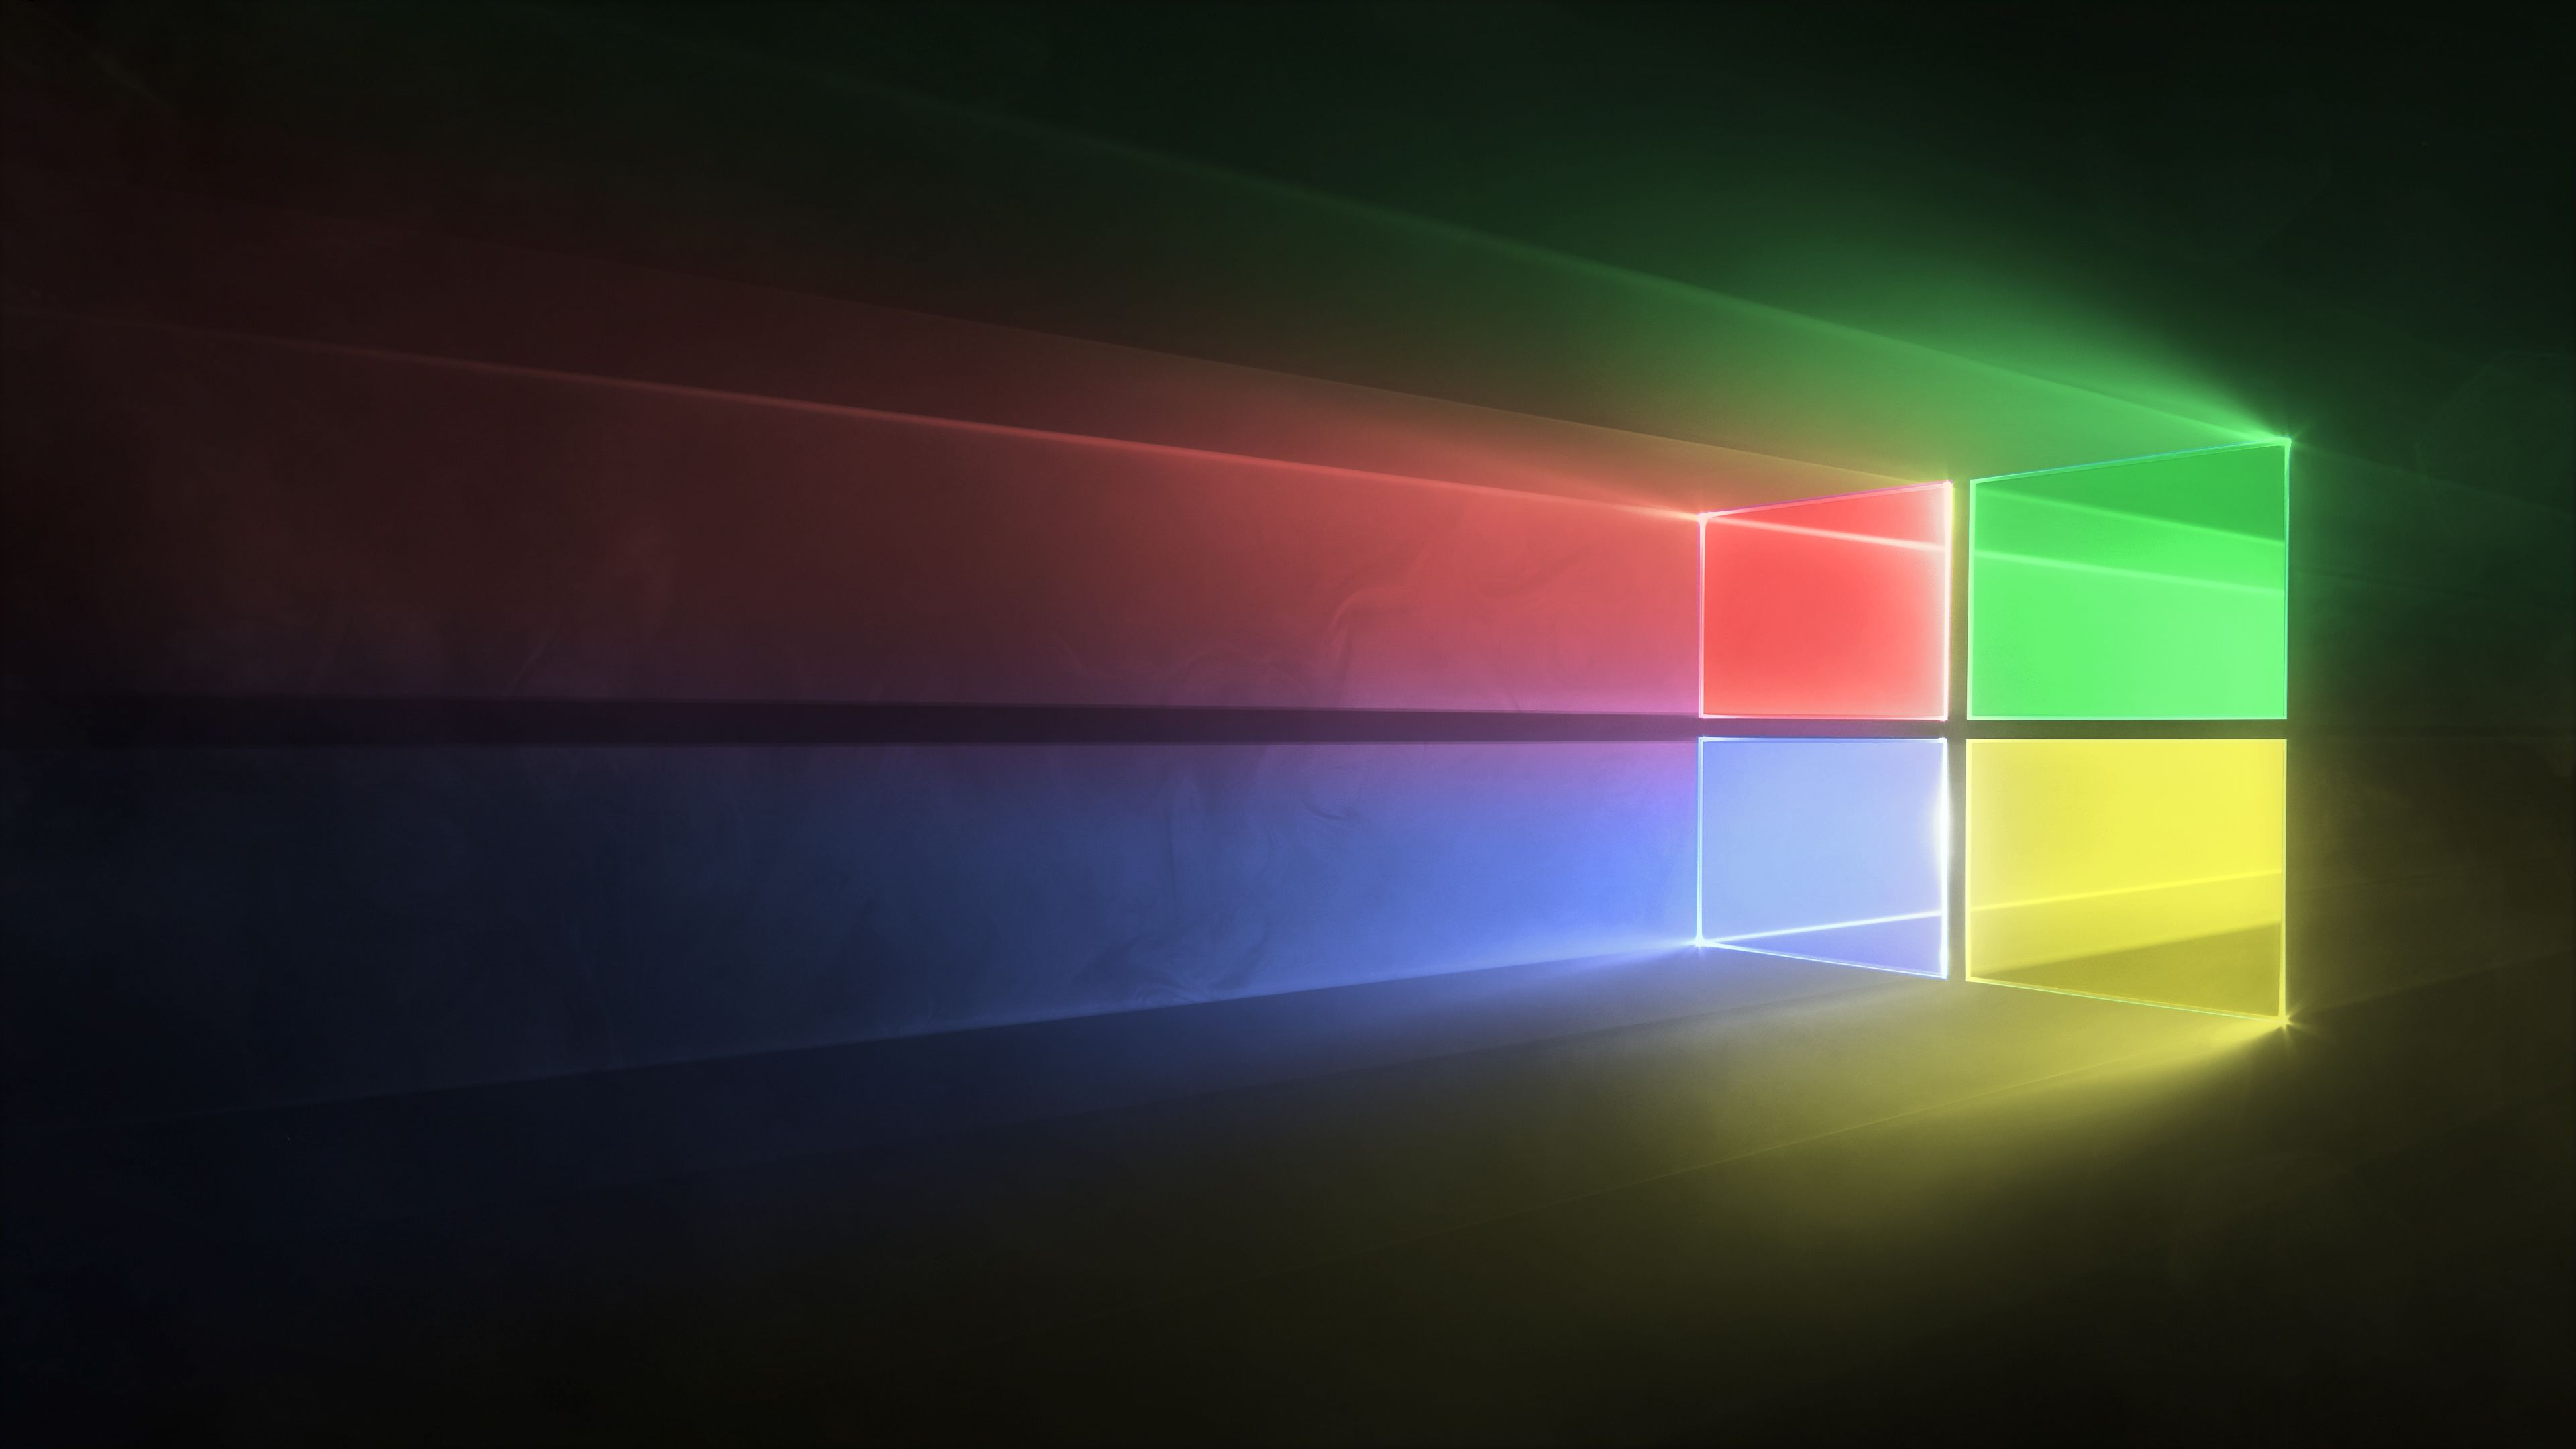 Wallpapers Windows 10 Light Design Lighting Architecture